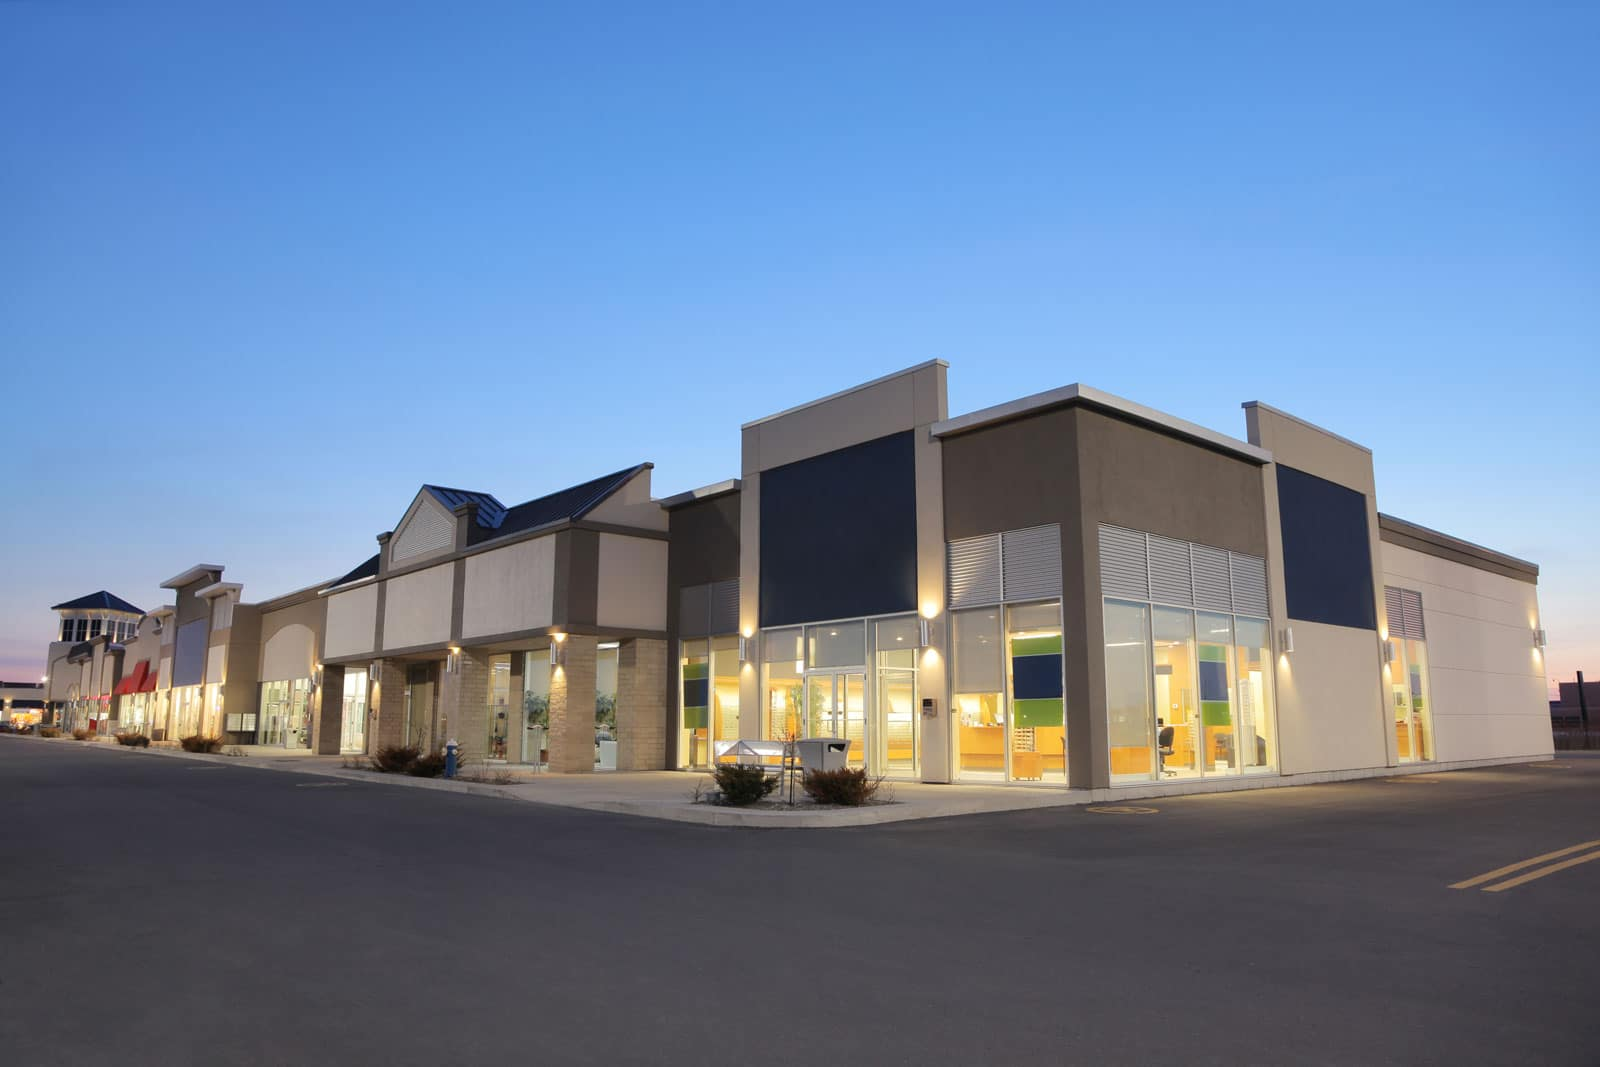 VERTEX, Environmental, 3Rs Solid Waste Audits: 68 Commercial Retail Stores, Ontario Canada 10019